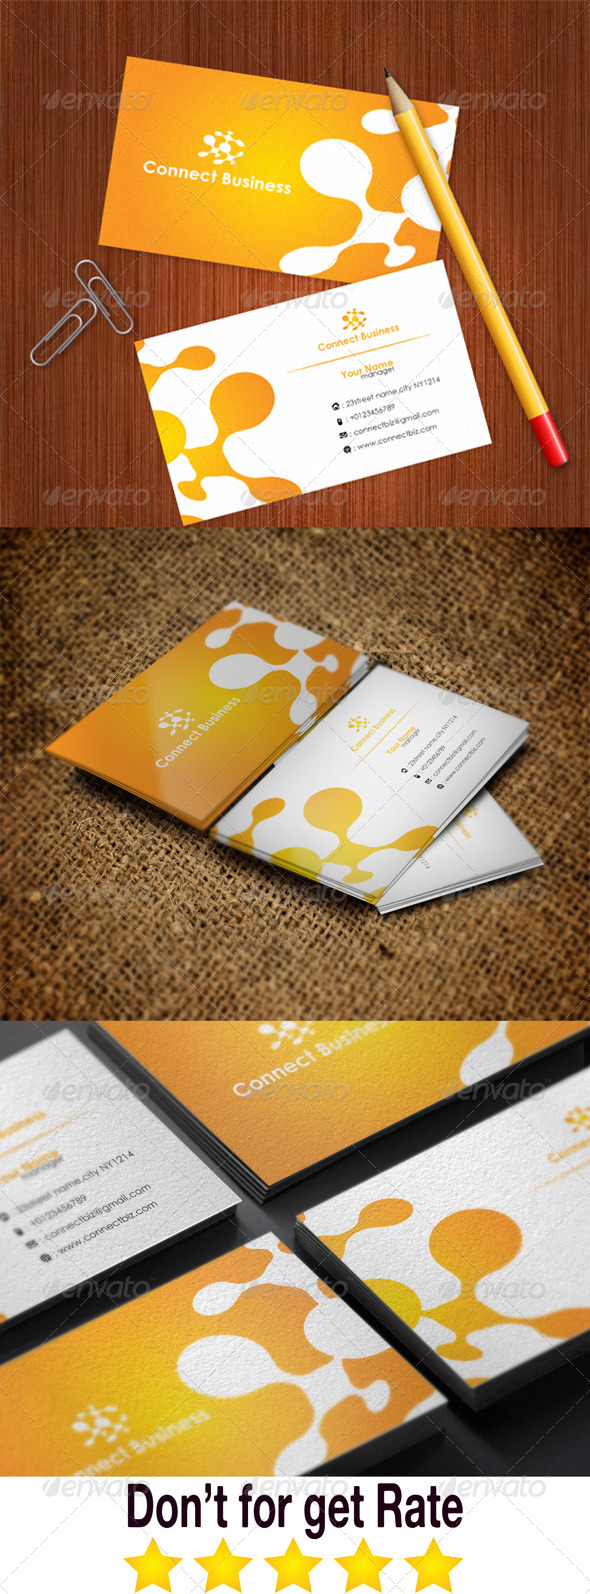 GraphicRiver Connect Business 5487055